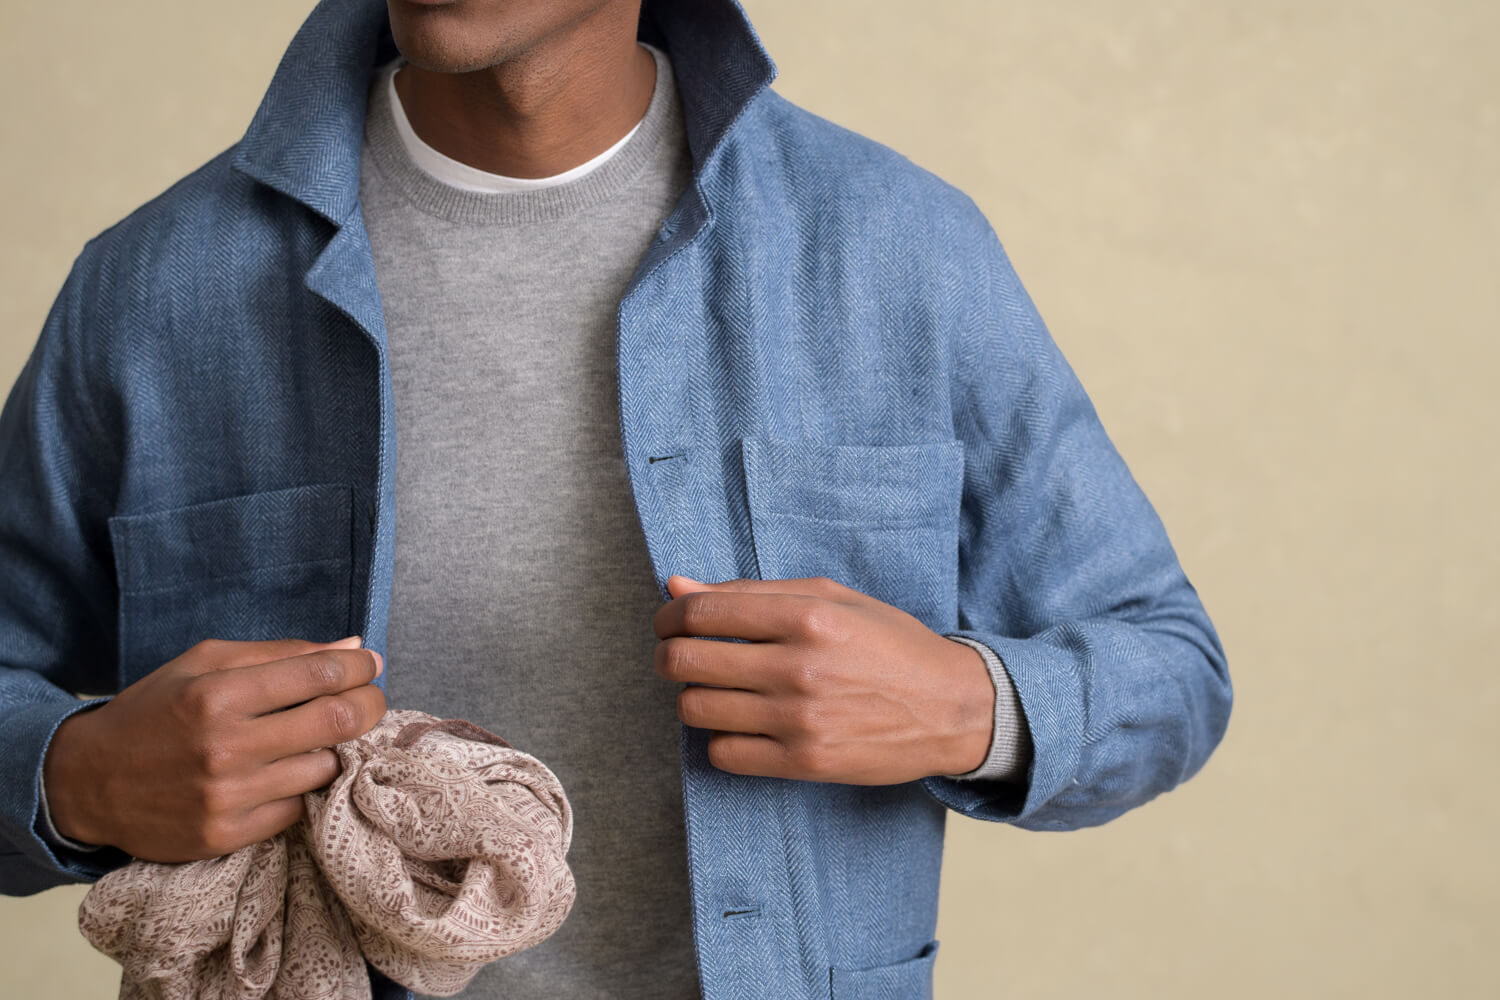 Look: The Linen Shirt Jacket Zoomed